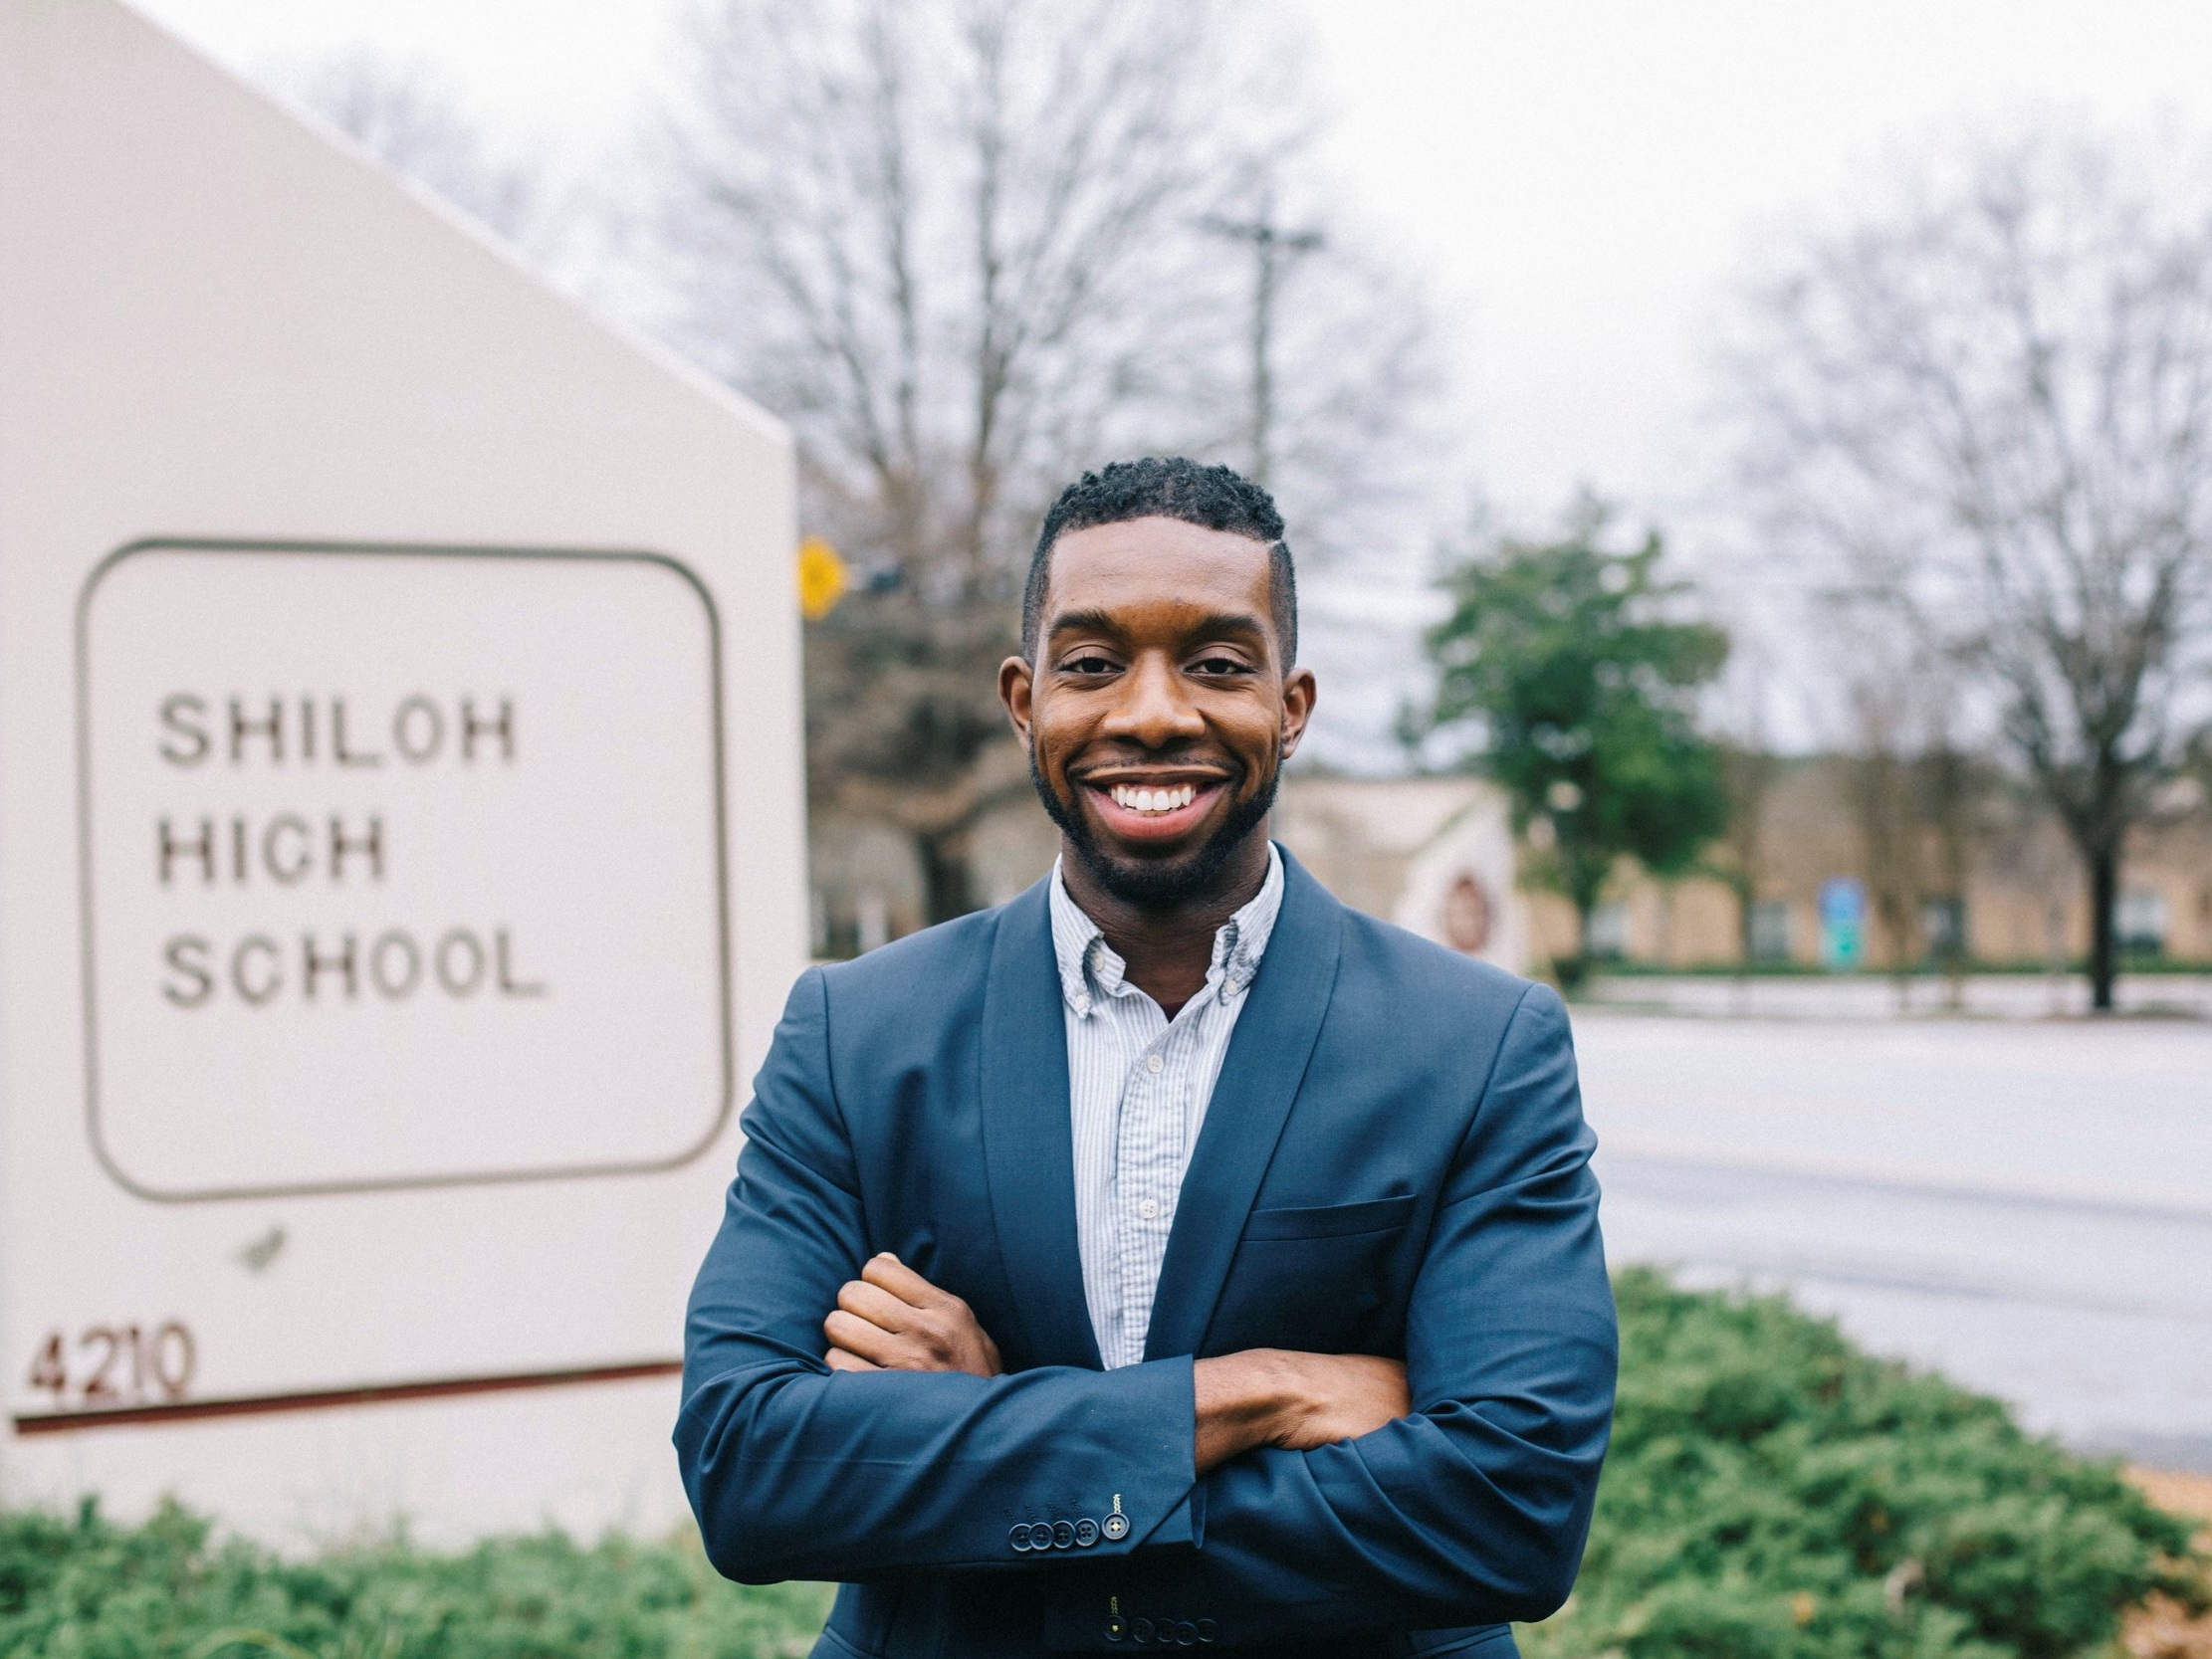 EJ won a historic race in 2018, becoming the first person of color and youngest-ever to serve on the Gwinnett County Board of Education. EJ is working to increase equity in teacher supports, reduce disproportionality in student discipline, and provide comprehensive student wellness services. He is committed to a future where every one of the district's nearly 180,000 students – of whom the majority are students of color – graduate and are college-ready.